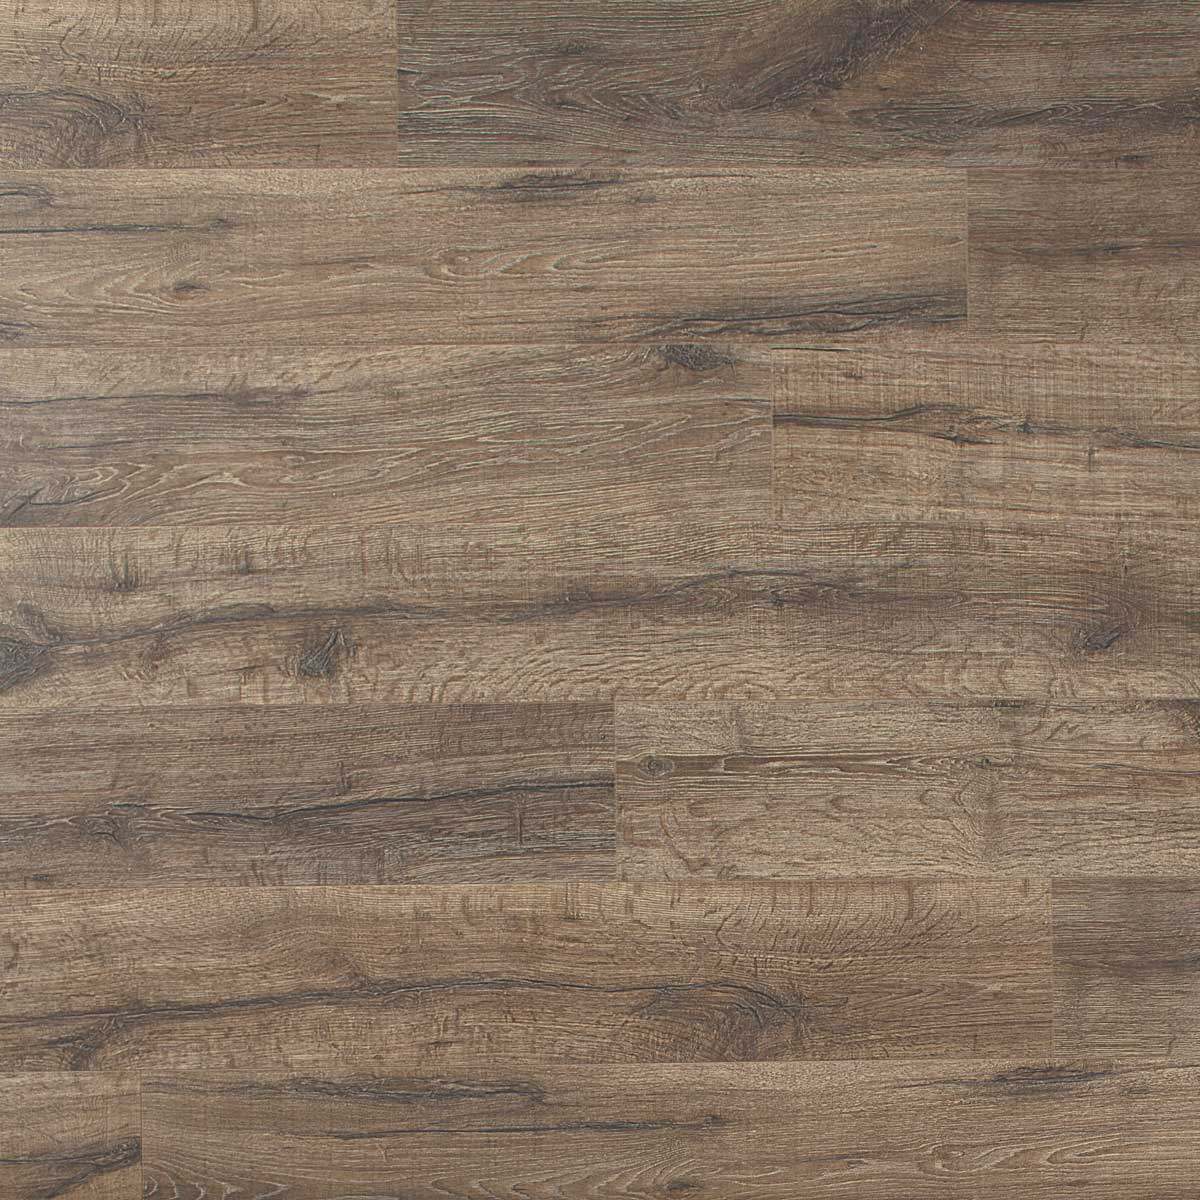 Cork Flooring Sacramento: Quick-Step Reclaime Heathered Oak Laminate Flooring